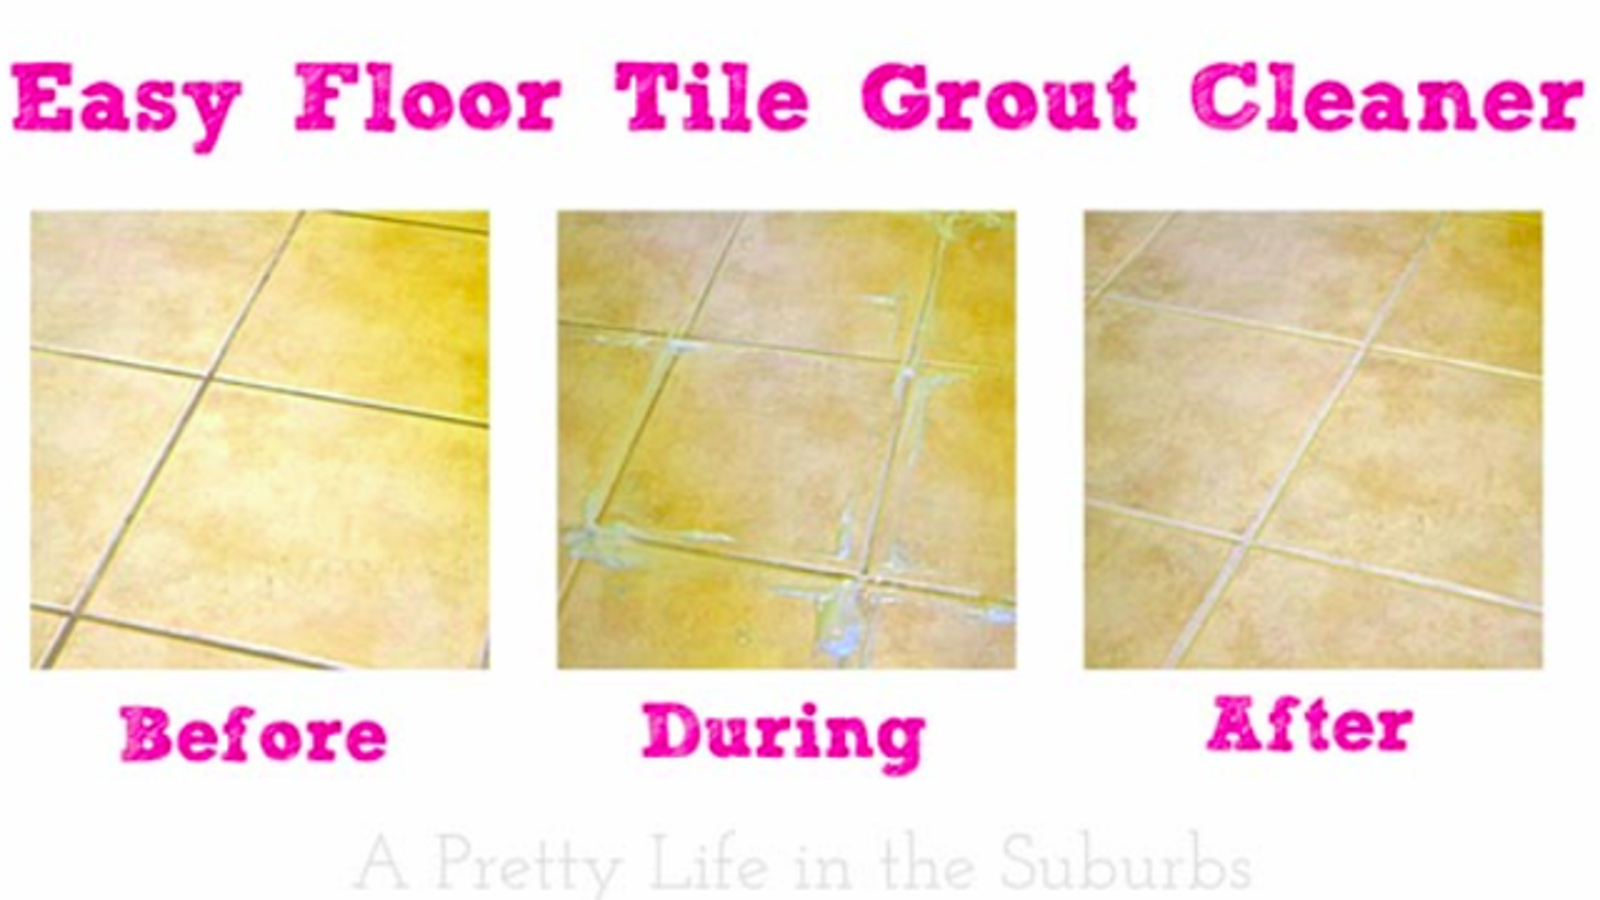 Diy Tile Grout Cleaner Makes Grout Look Like New With Less Scrubbing